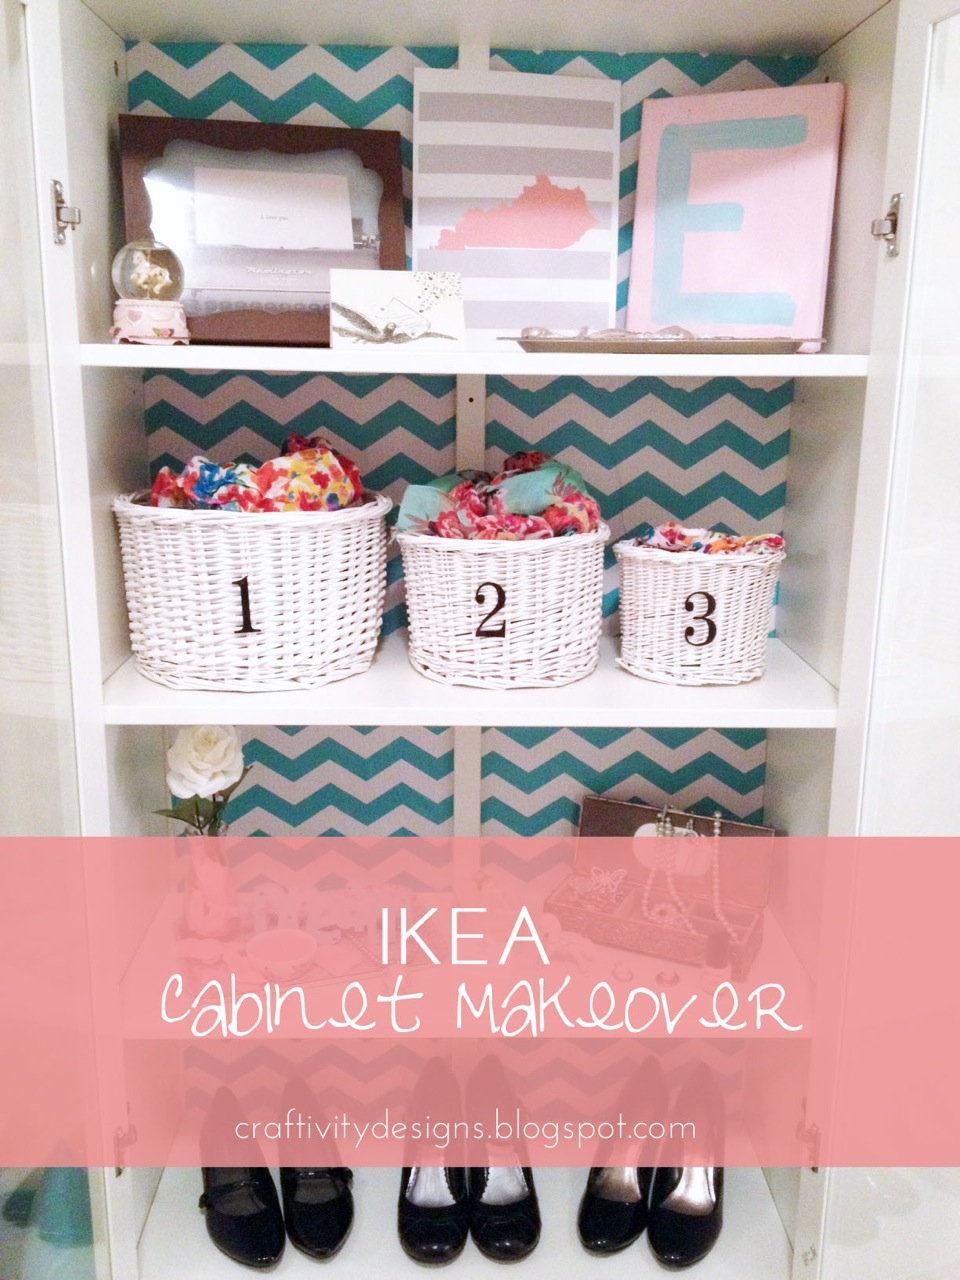 Add contact paper inside a cabinet by Erica from Craftivity Designs ...